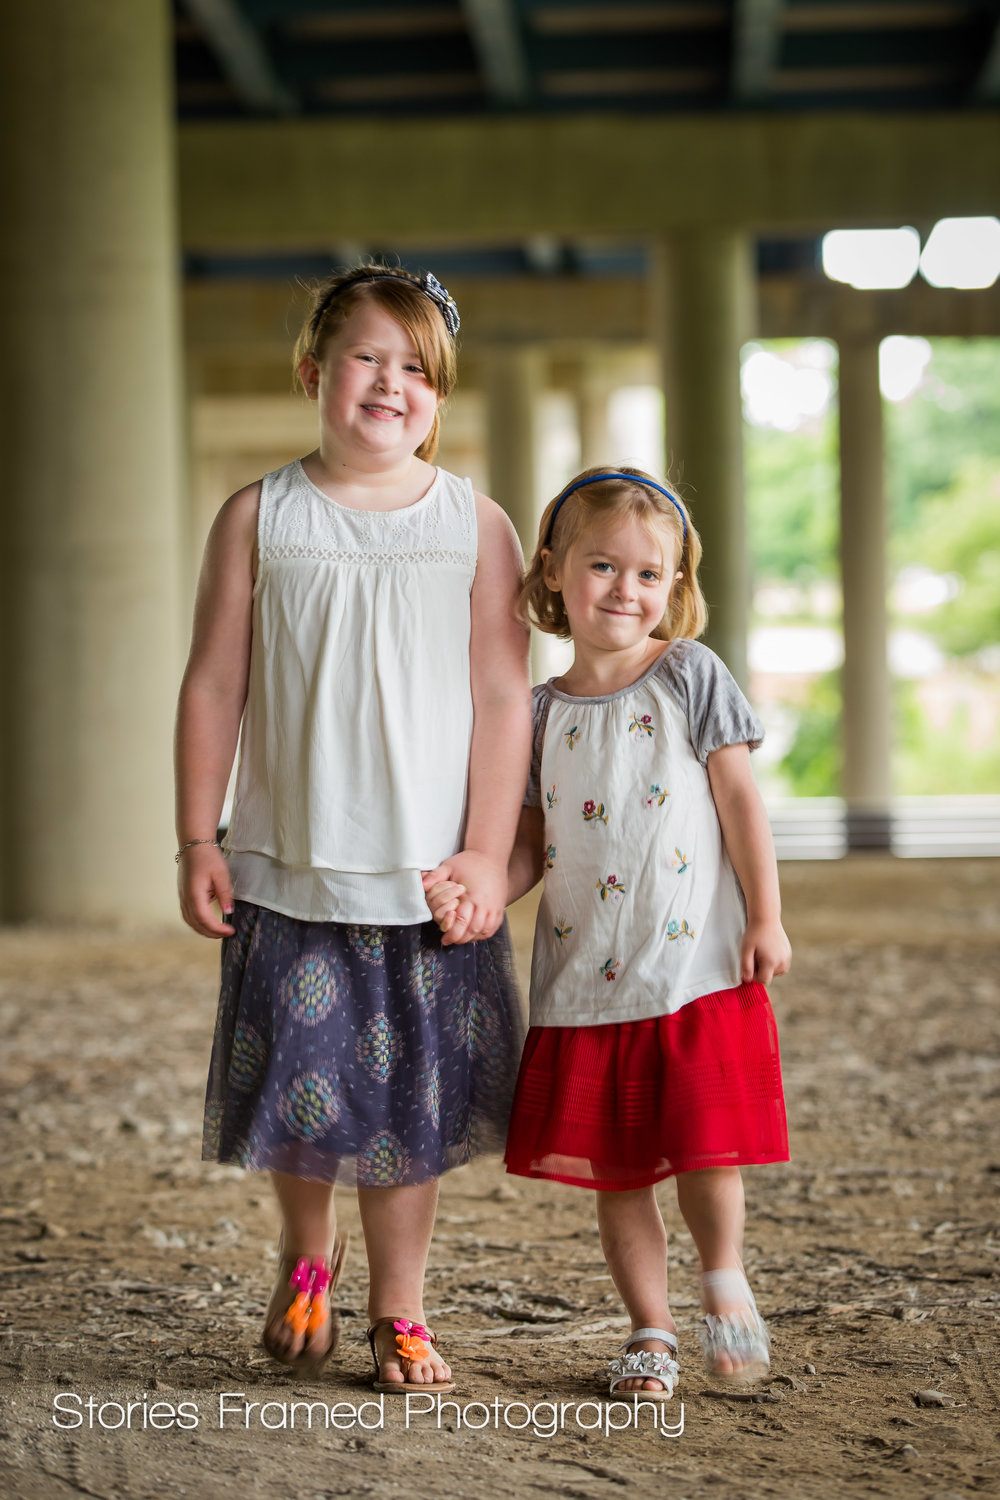 Wauwatosa Child Photography sisters holding hands